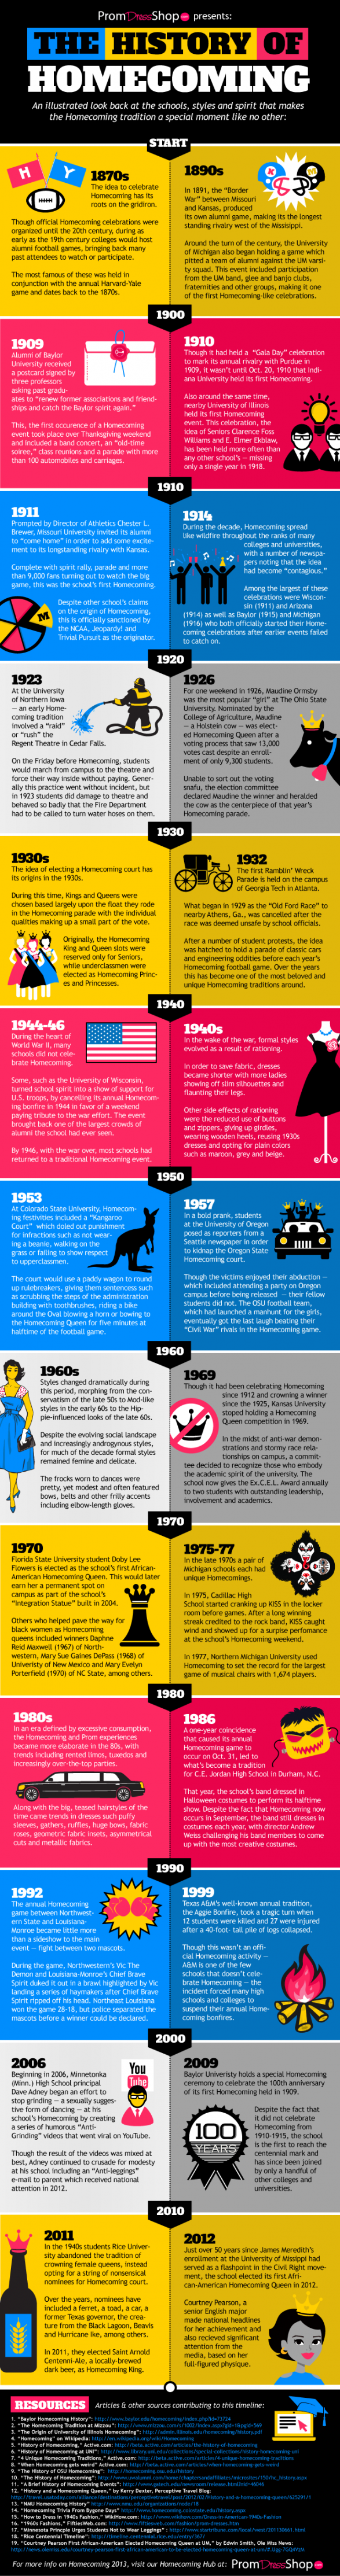 The History of Homecoming